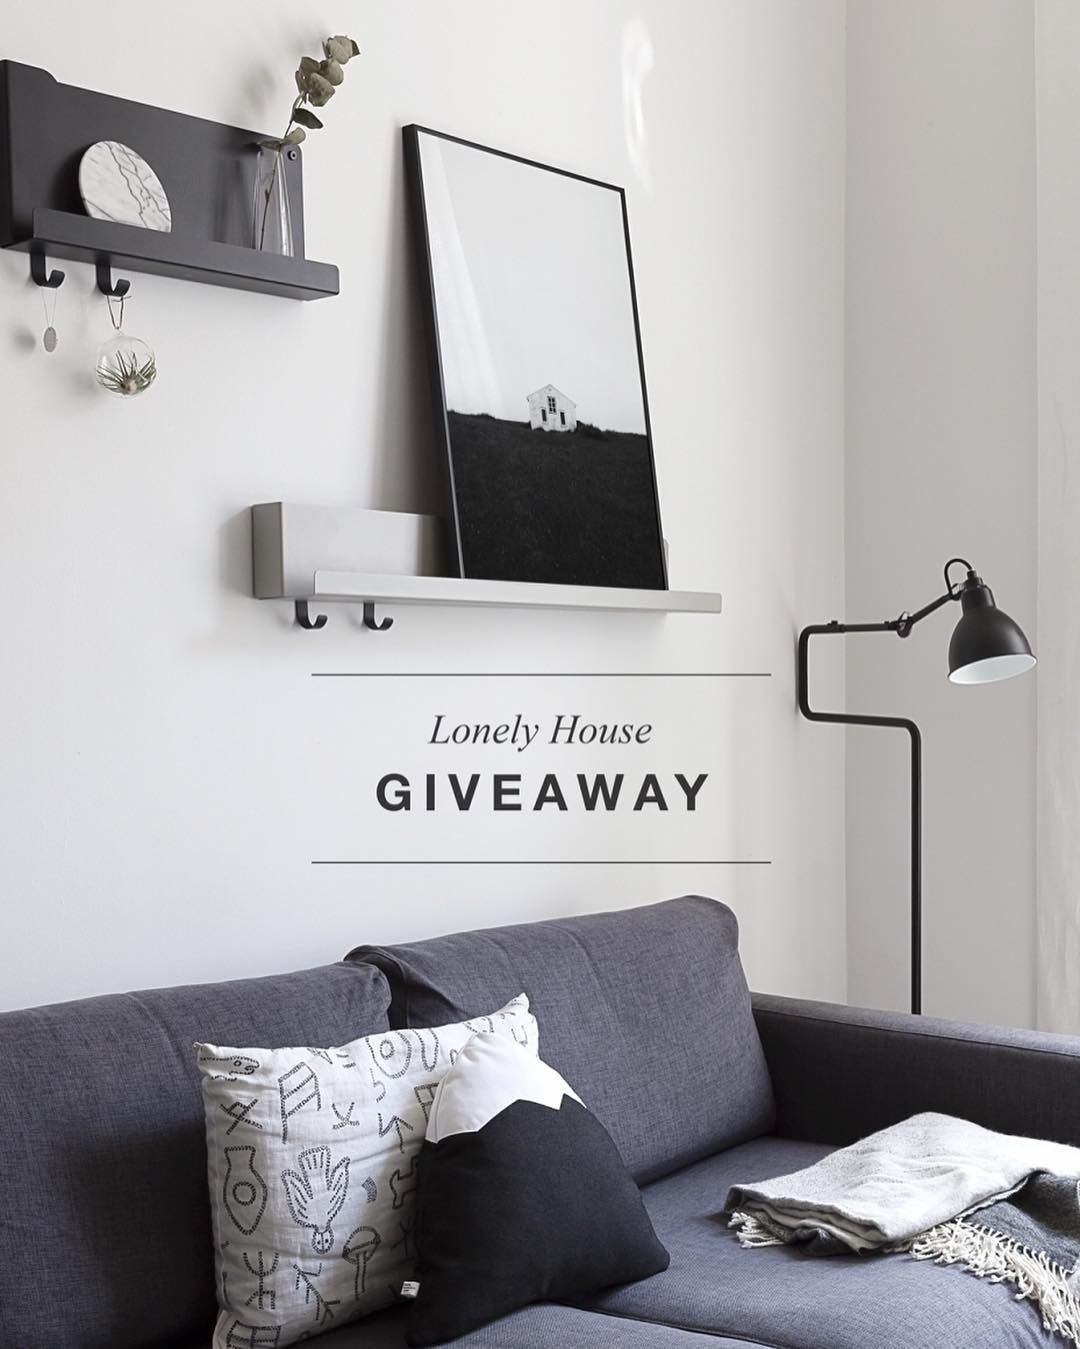 Time for another giveaway - this week you can win a 'Lonely House' print for you and your friend ! All you have to do is comment on this picture and tag a friend you would like to win with you. Winners will be announced coming Sunday good luck ! #cocolapine #giveaway